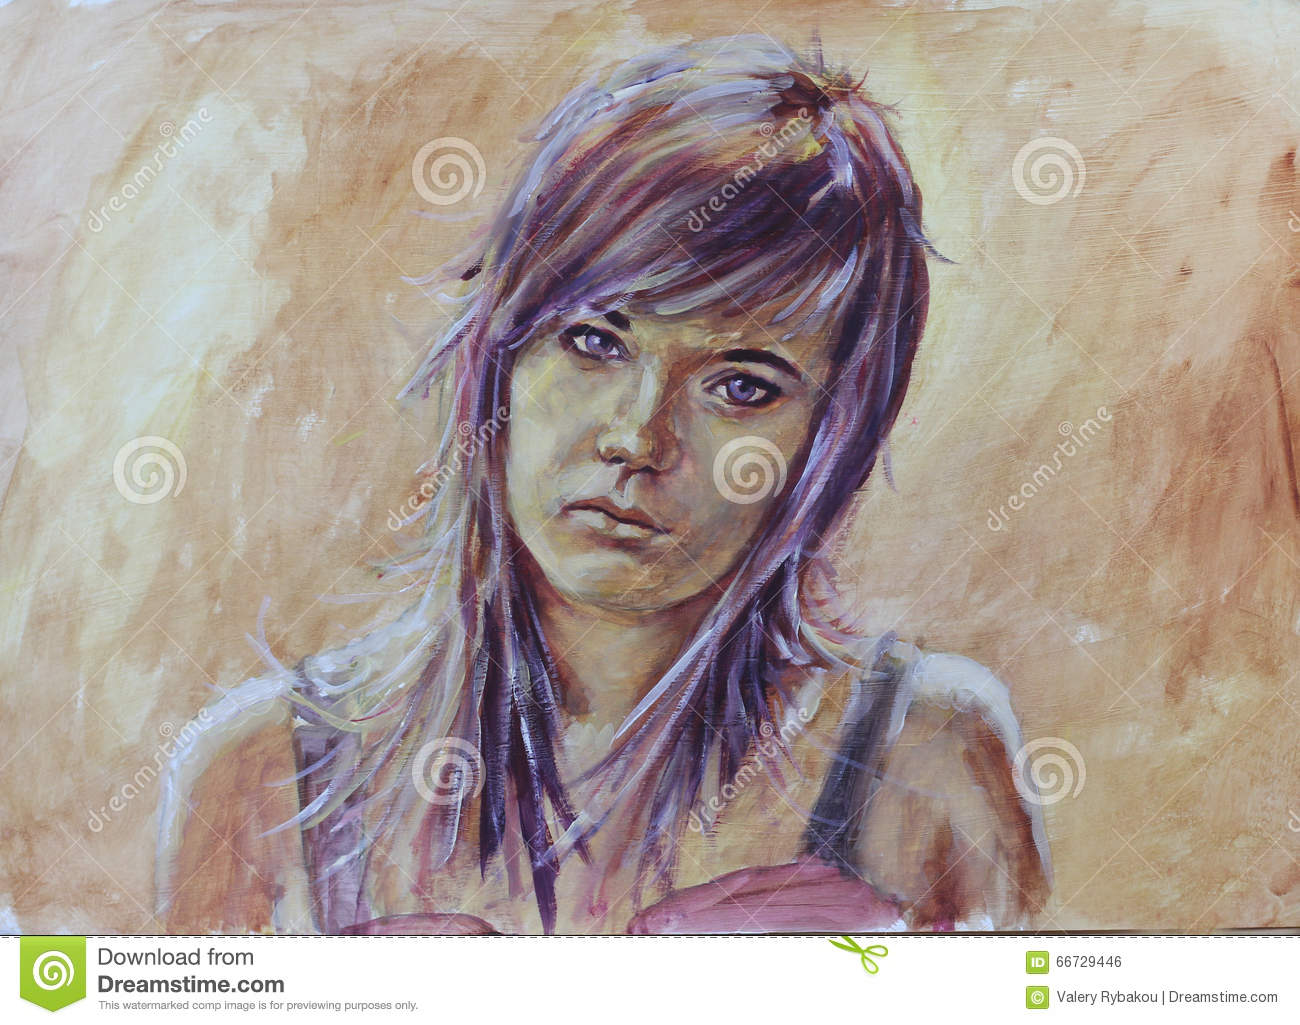 Remarkable, beautiful woman oil painting opinion you